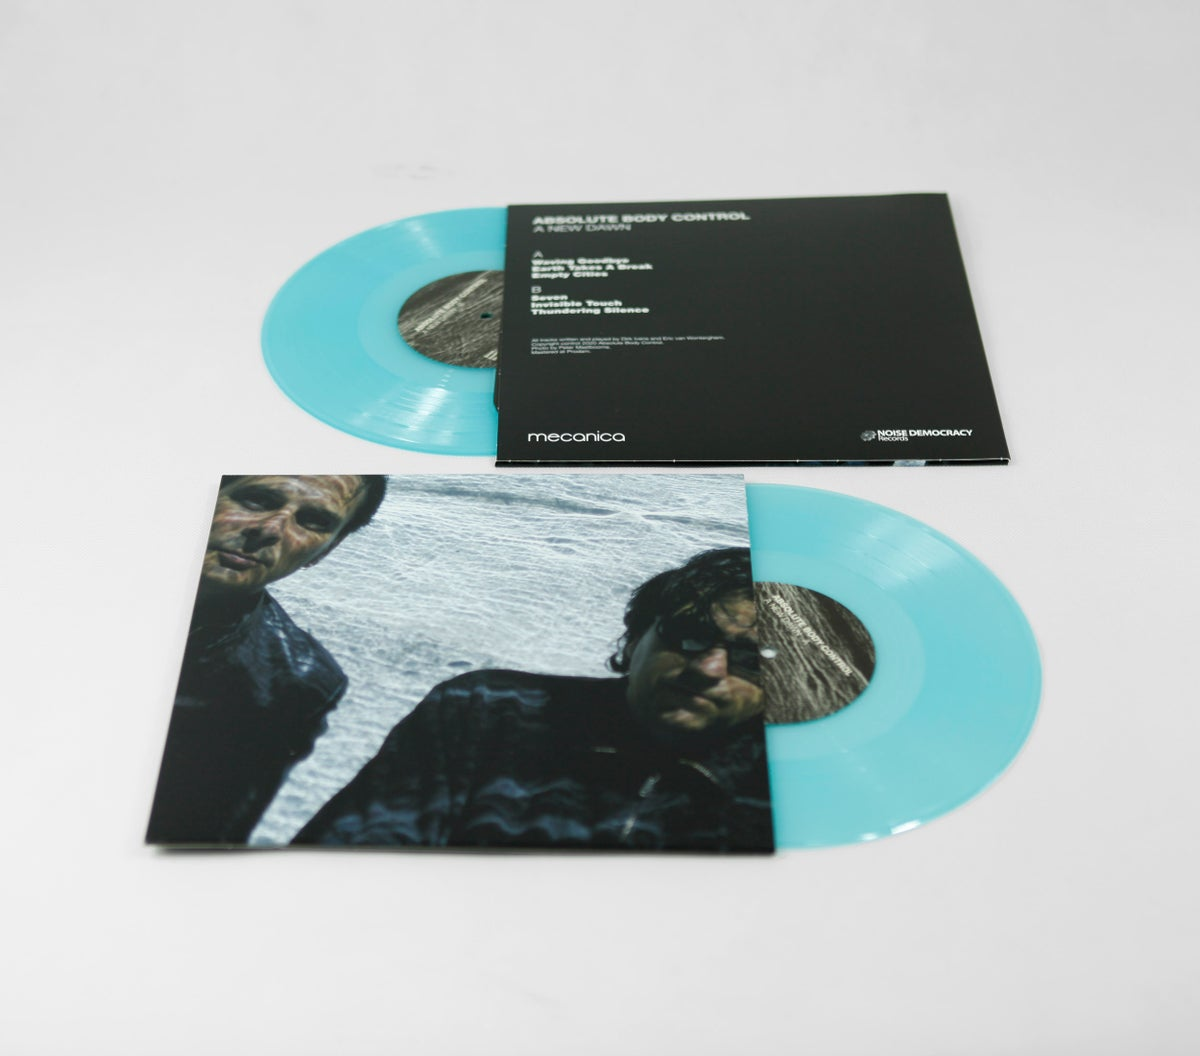 Image of Absolute Body Control - A New Dawn 10""